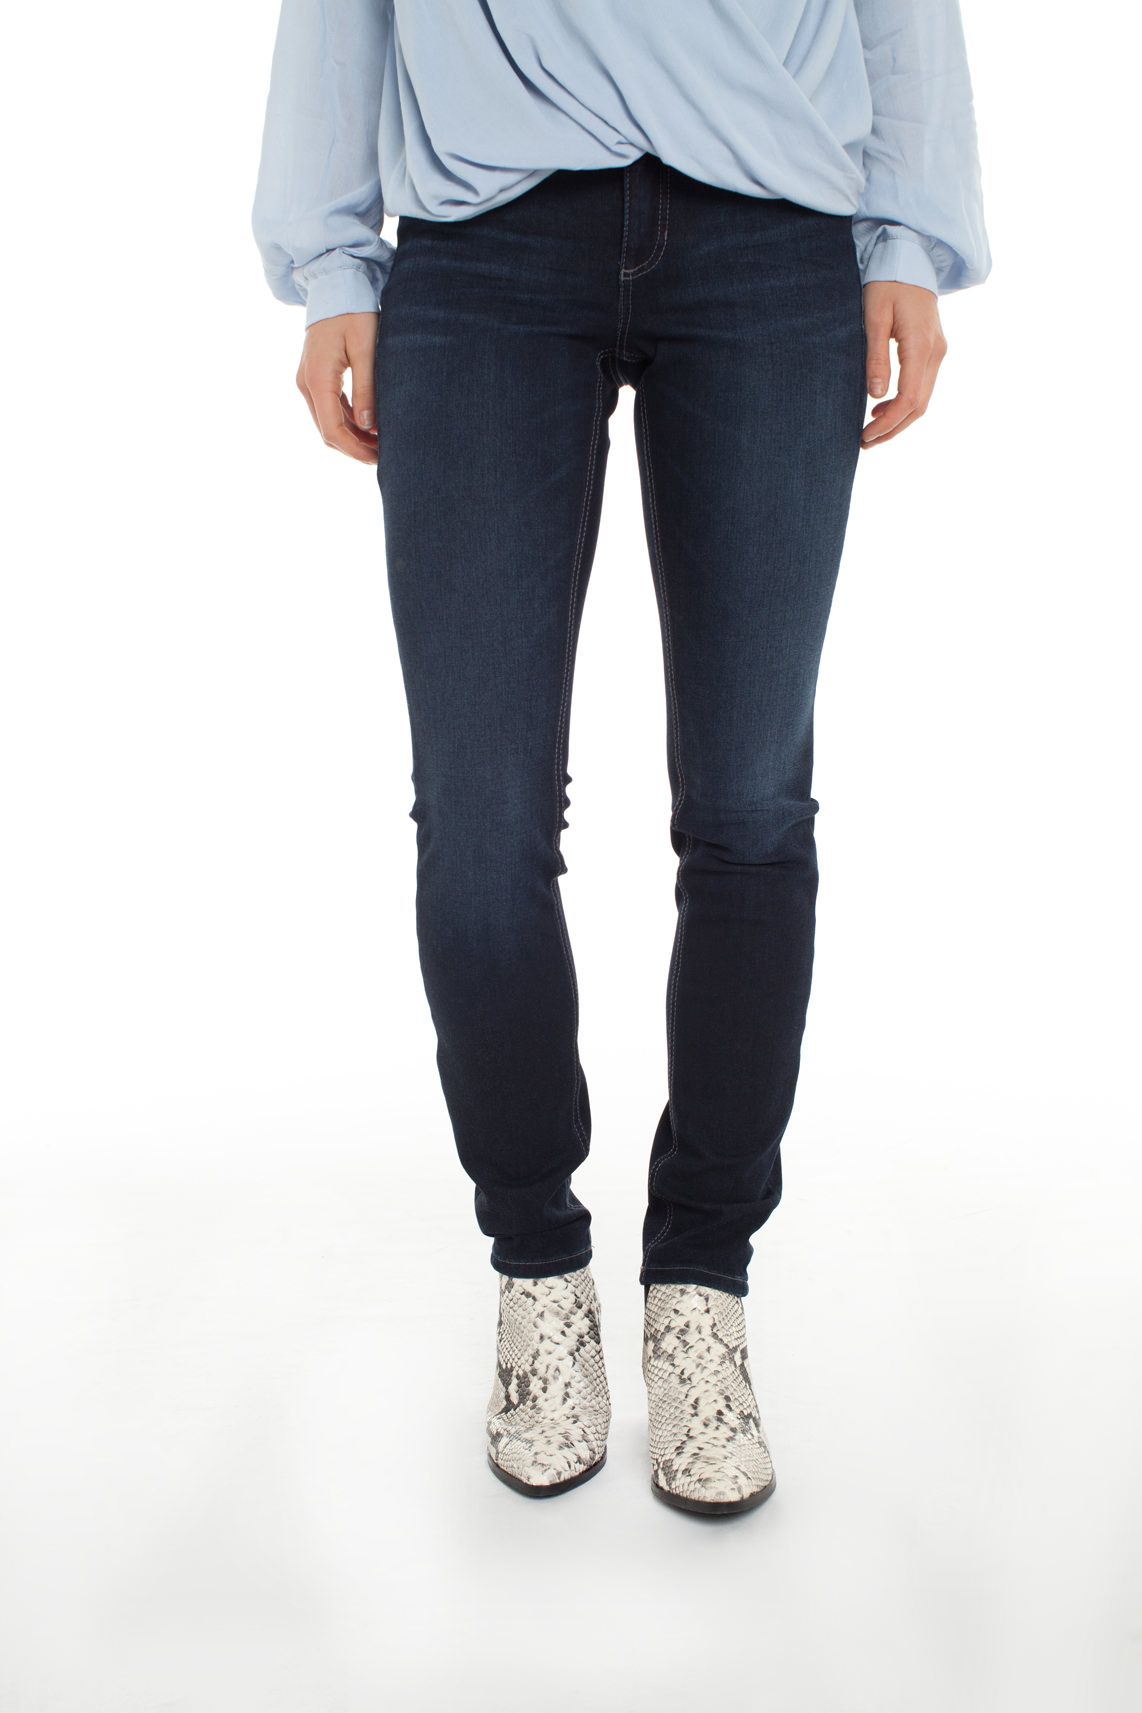 Cambio Dames Parla donkere jeans Blauw